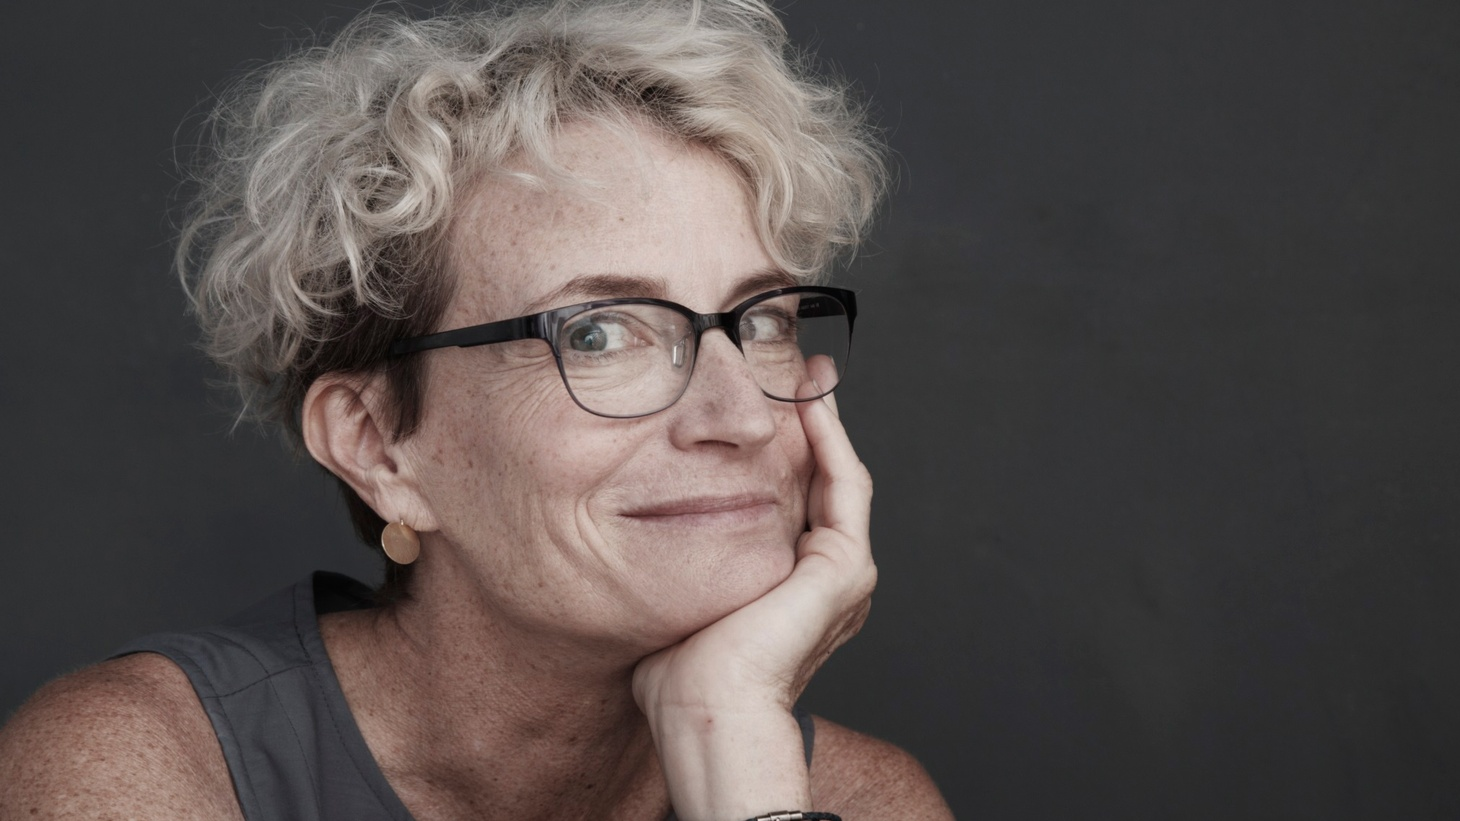 There's a lot of talk about sexism and racism in the news, but how often do you hear about discrimination based on a person's age? According to author and activist Ashton Applewhite, ageism is one of the last socially acceptable prejudices.